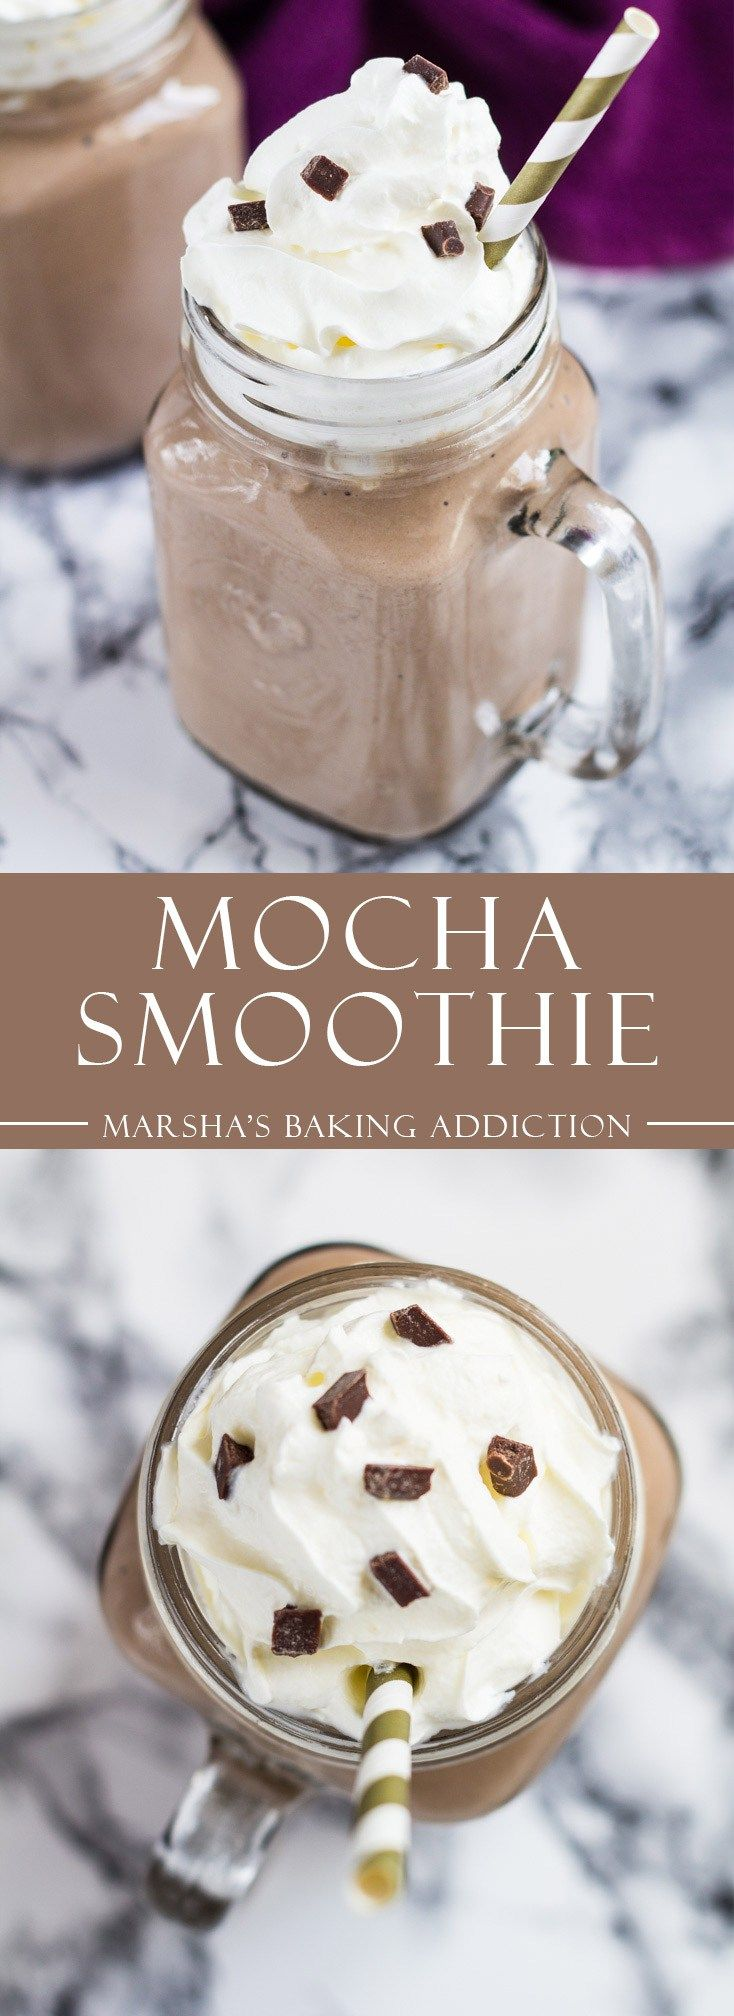 Mocha Smoothie | marshasbakingaddiction.com @marshasbakeblog